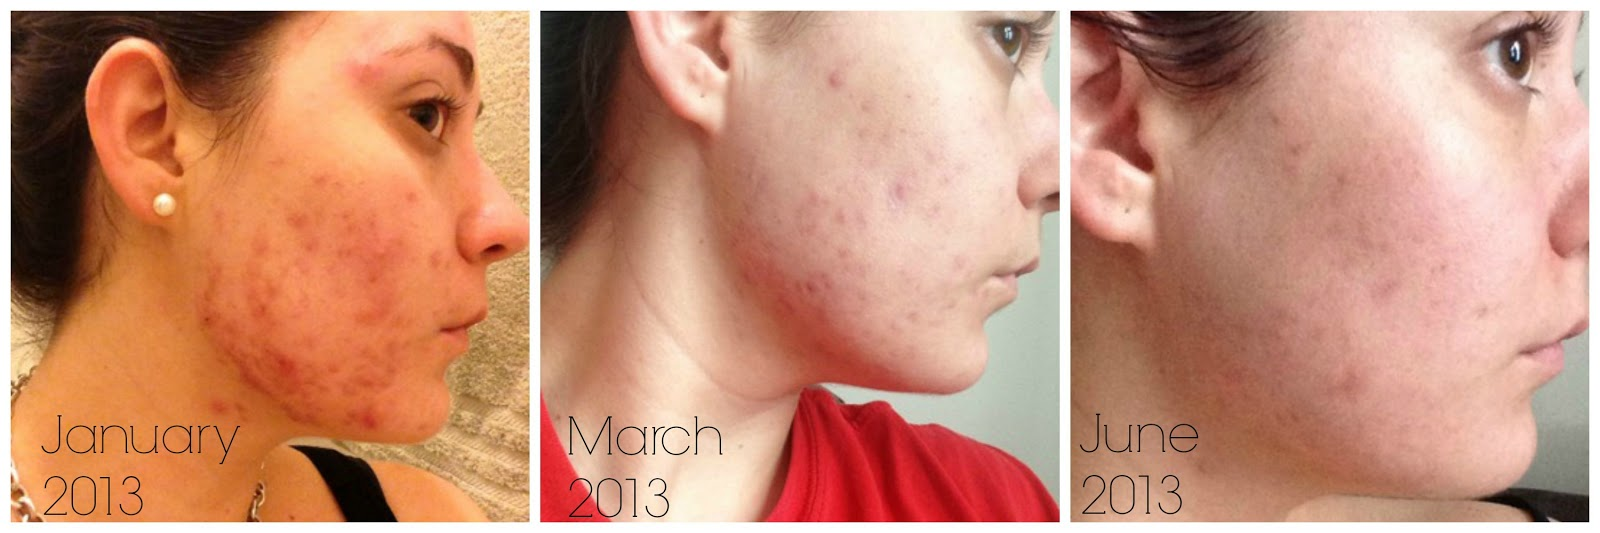 How I Cleared Up My Acne (6 Month Proactiv Update